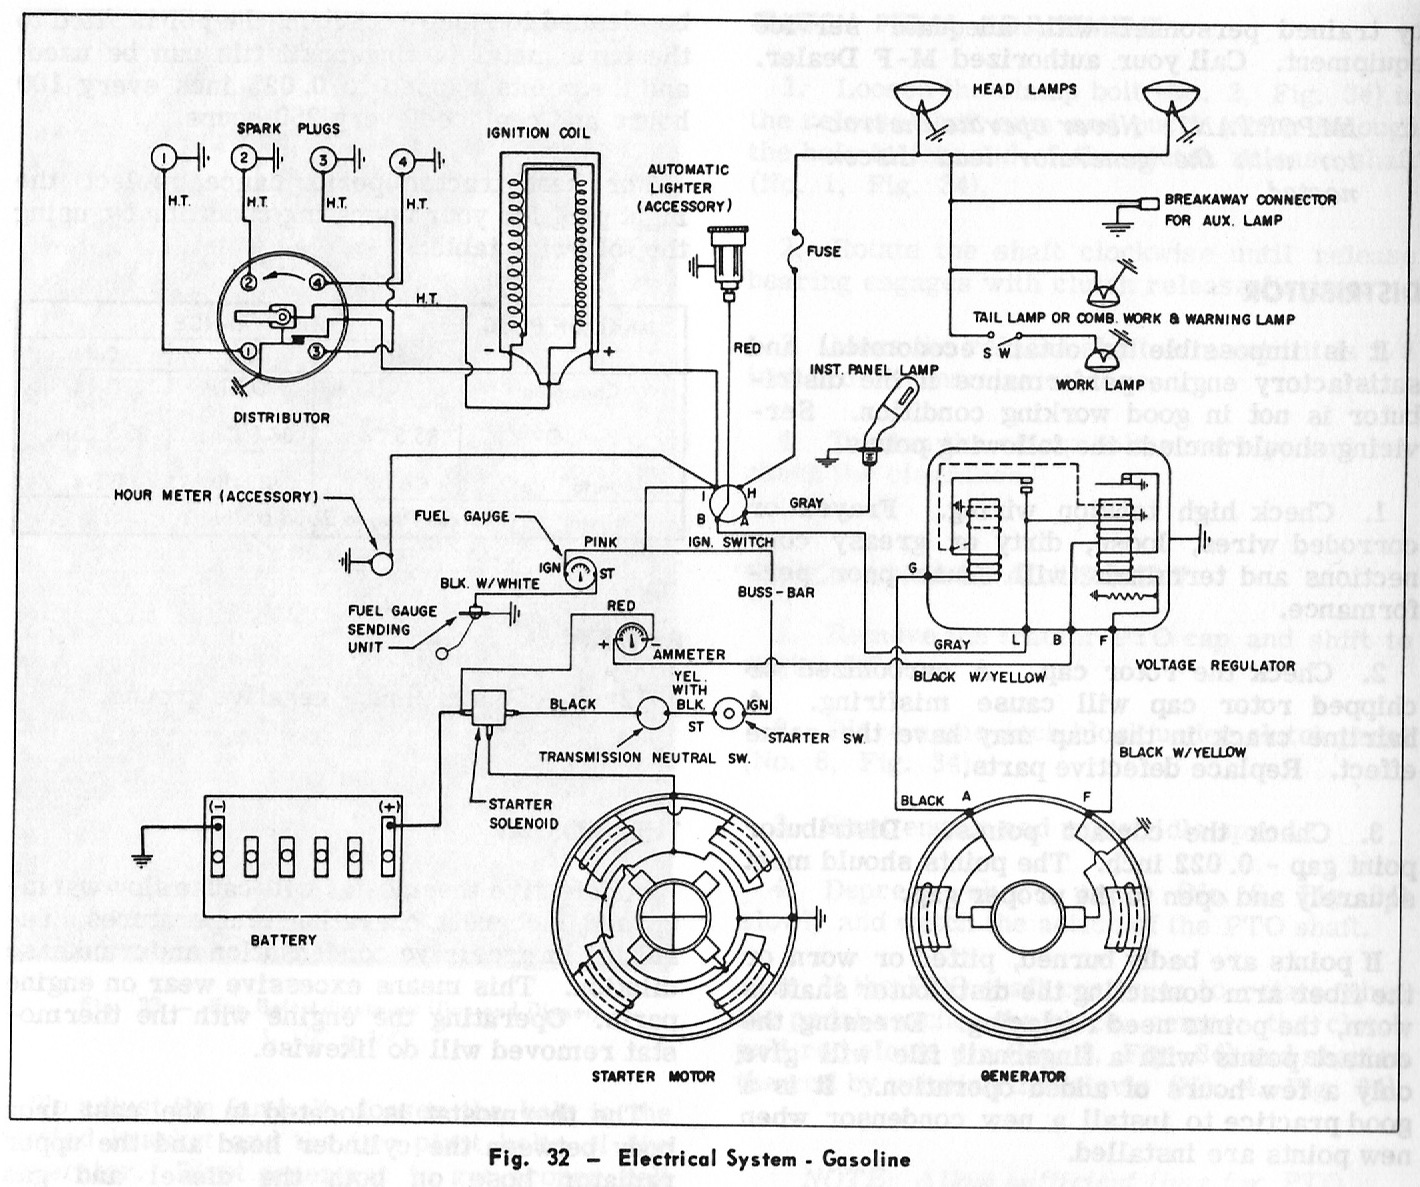 hight resolution of mf65 wiring diagram wiring diagram z1 massey ferguson 135 tractor wiring diagram mf 65 wiring diagram